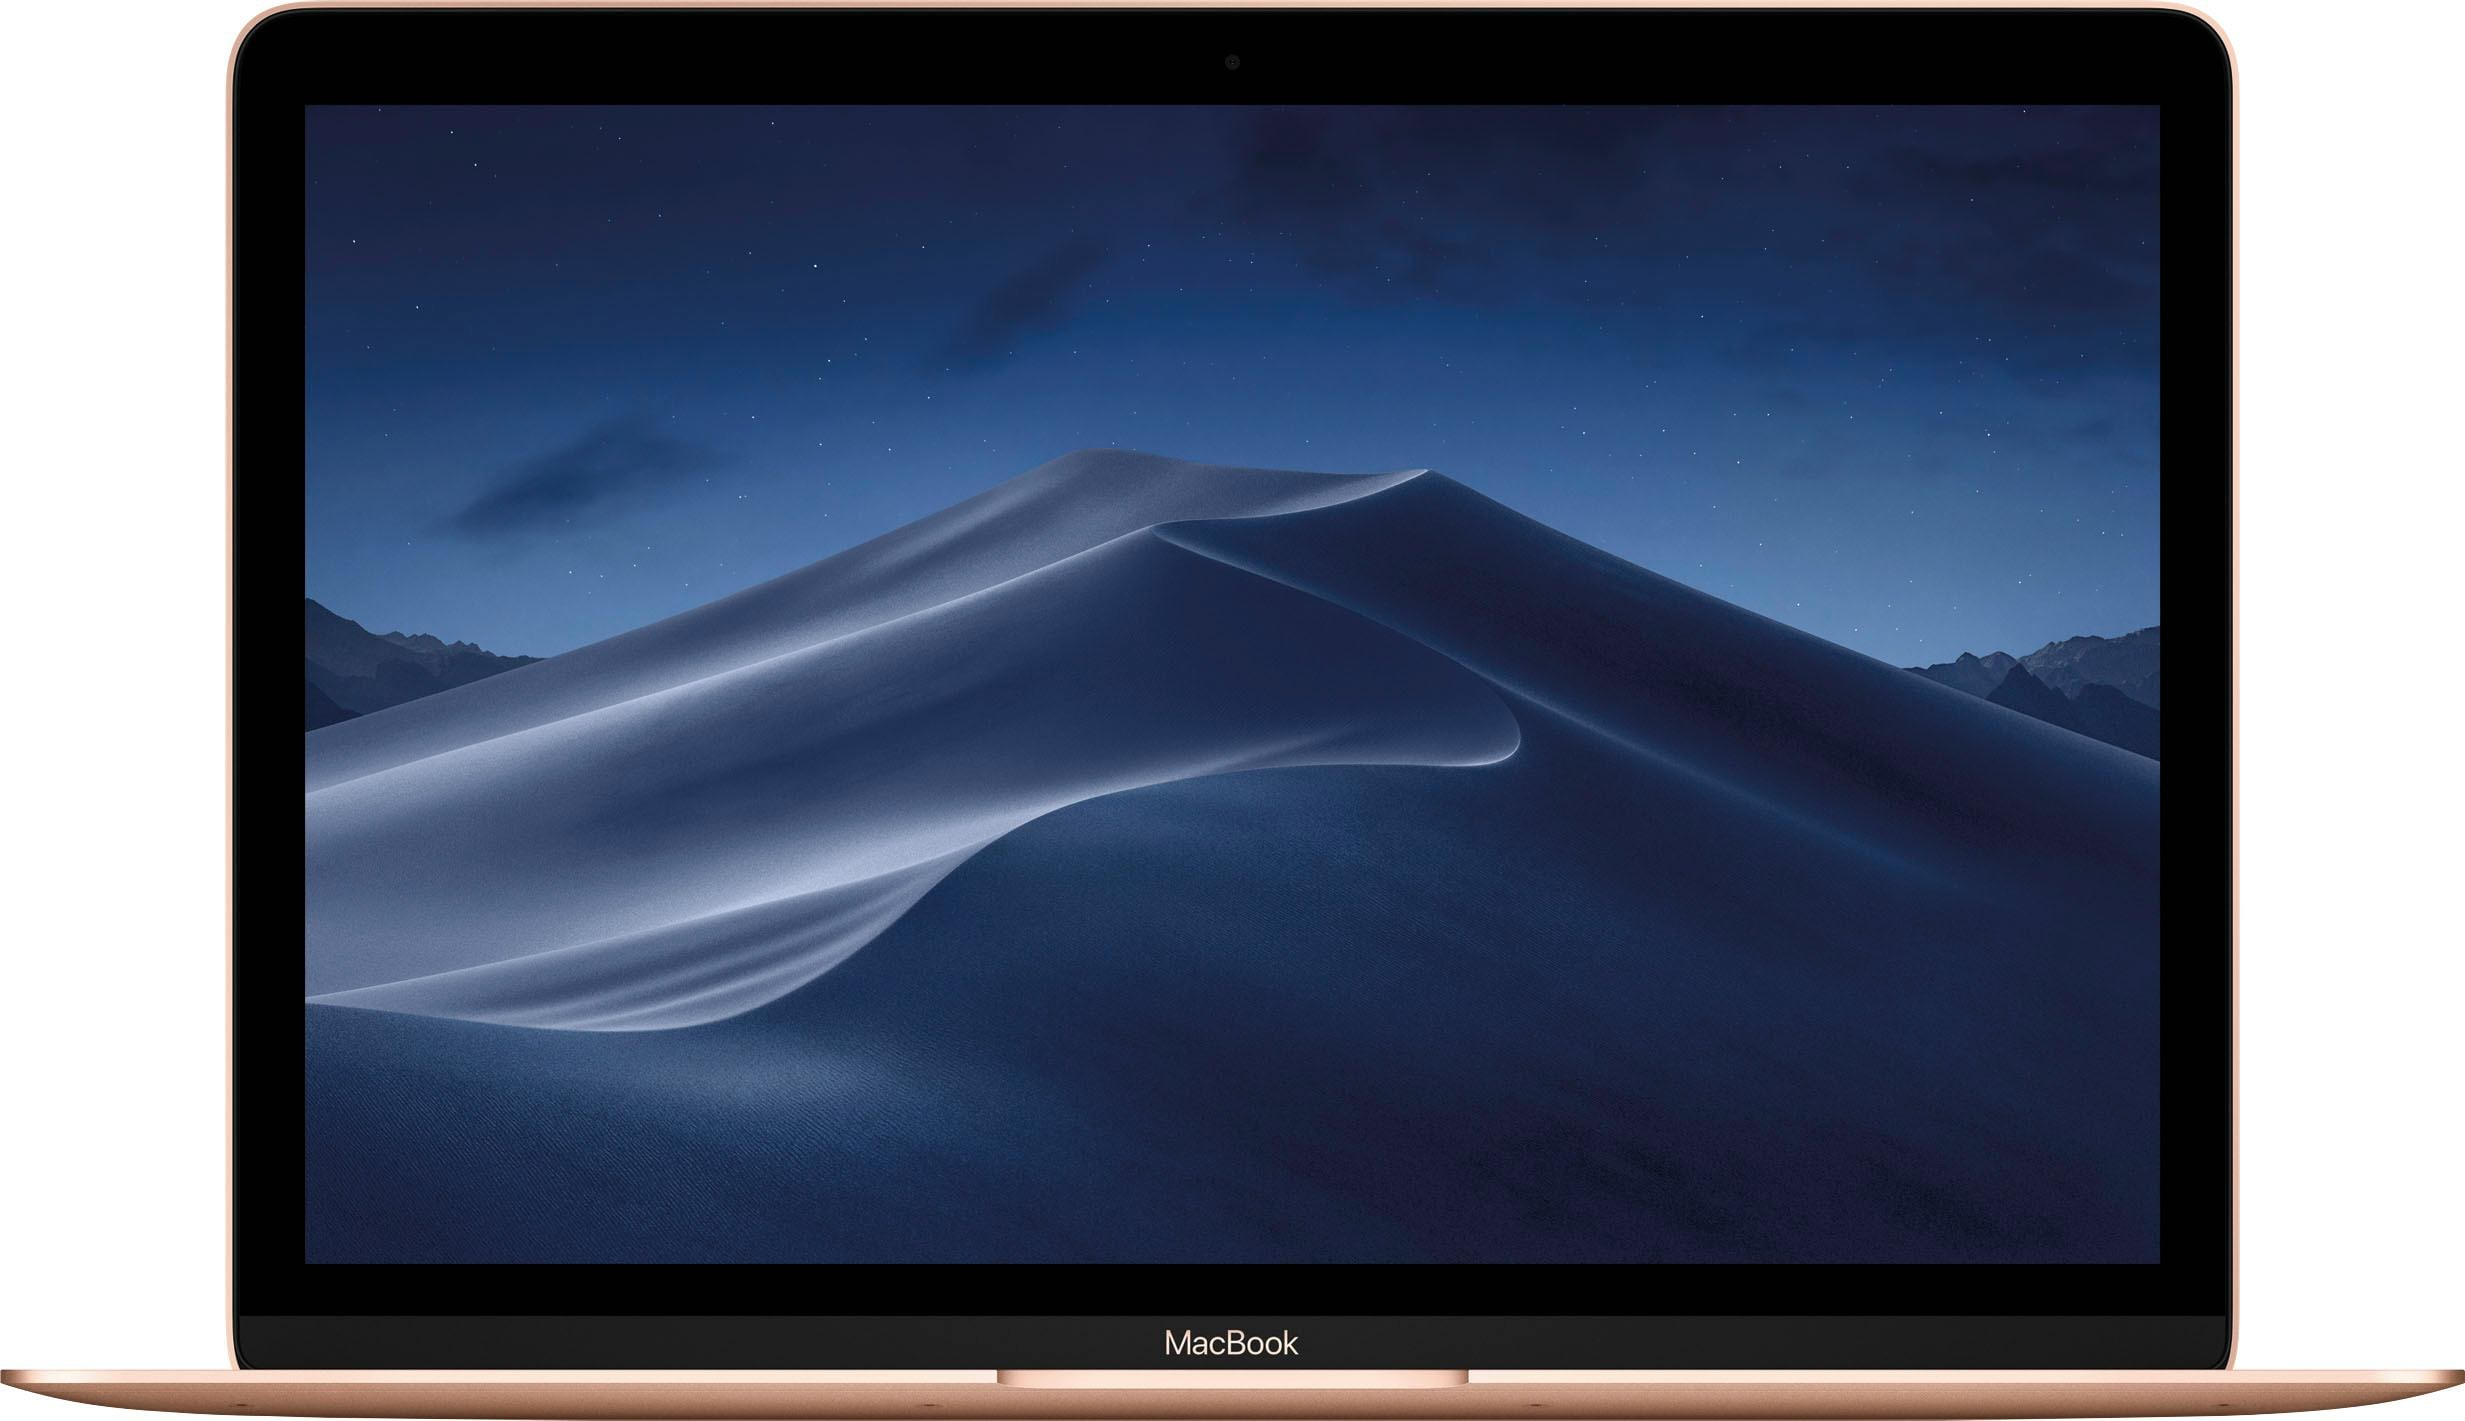 Apple MacBook 12´´ Notebook (30,5 cm / 12 Zoll, Intel, Core m3, 256 GB SSD)